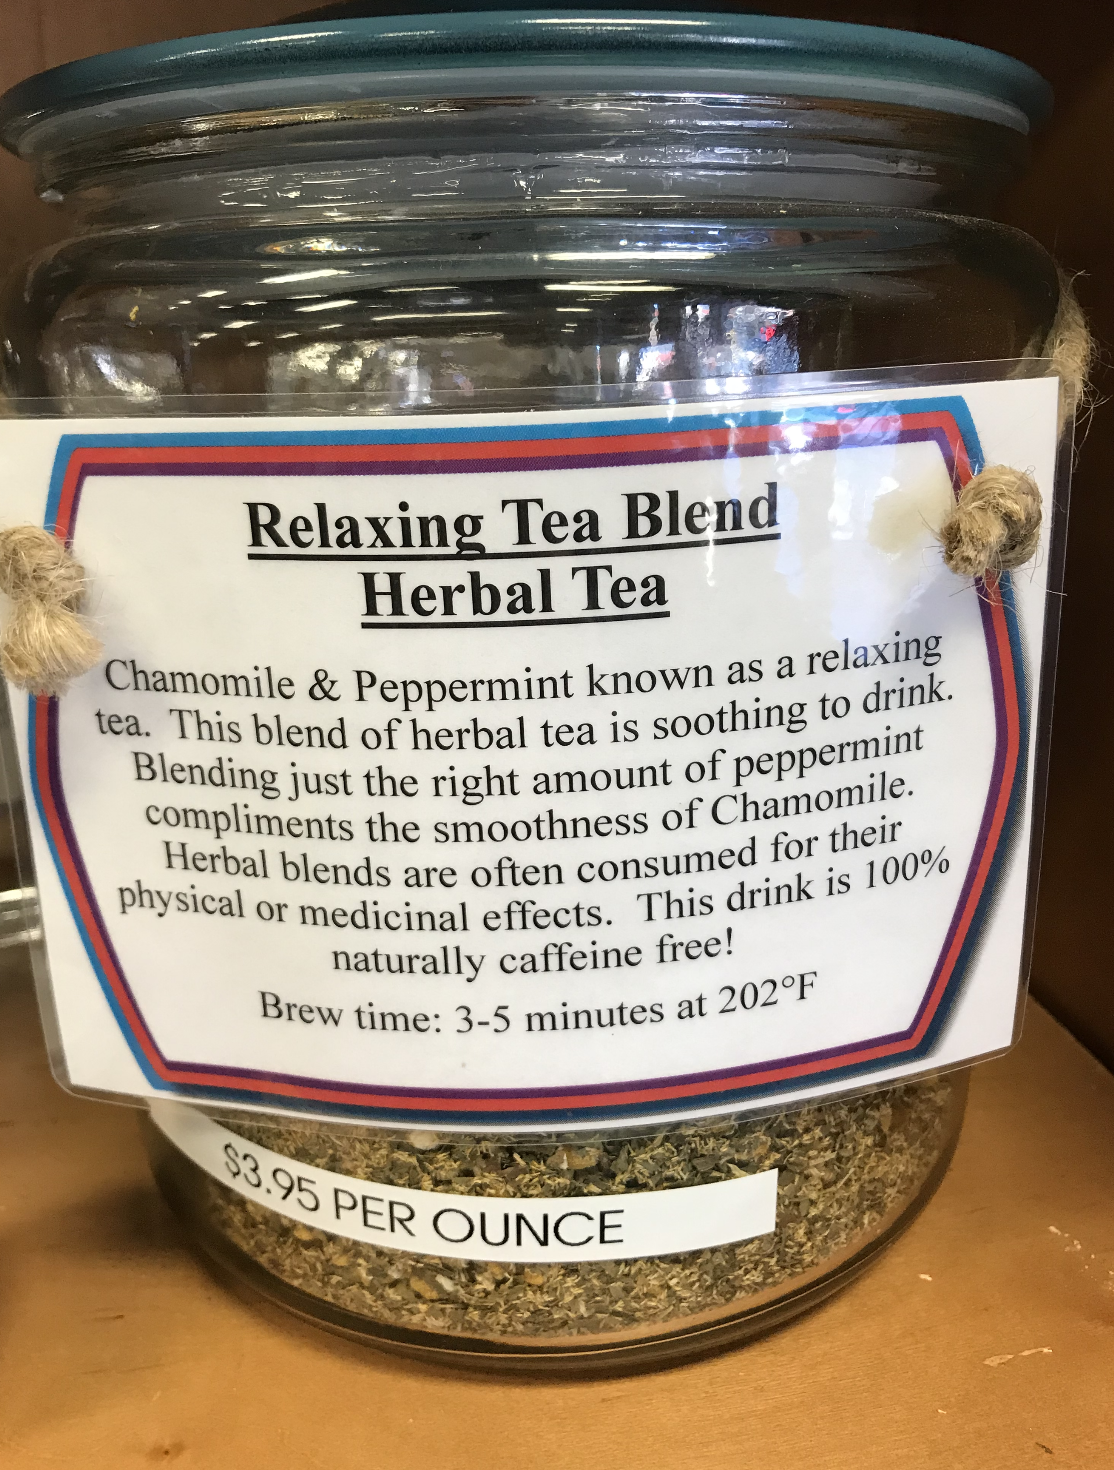 Relaxing Tea per ounce